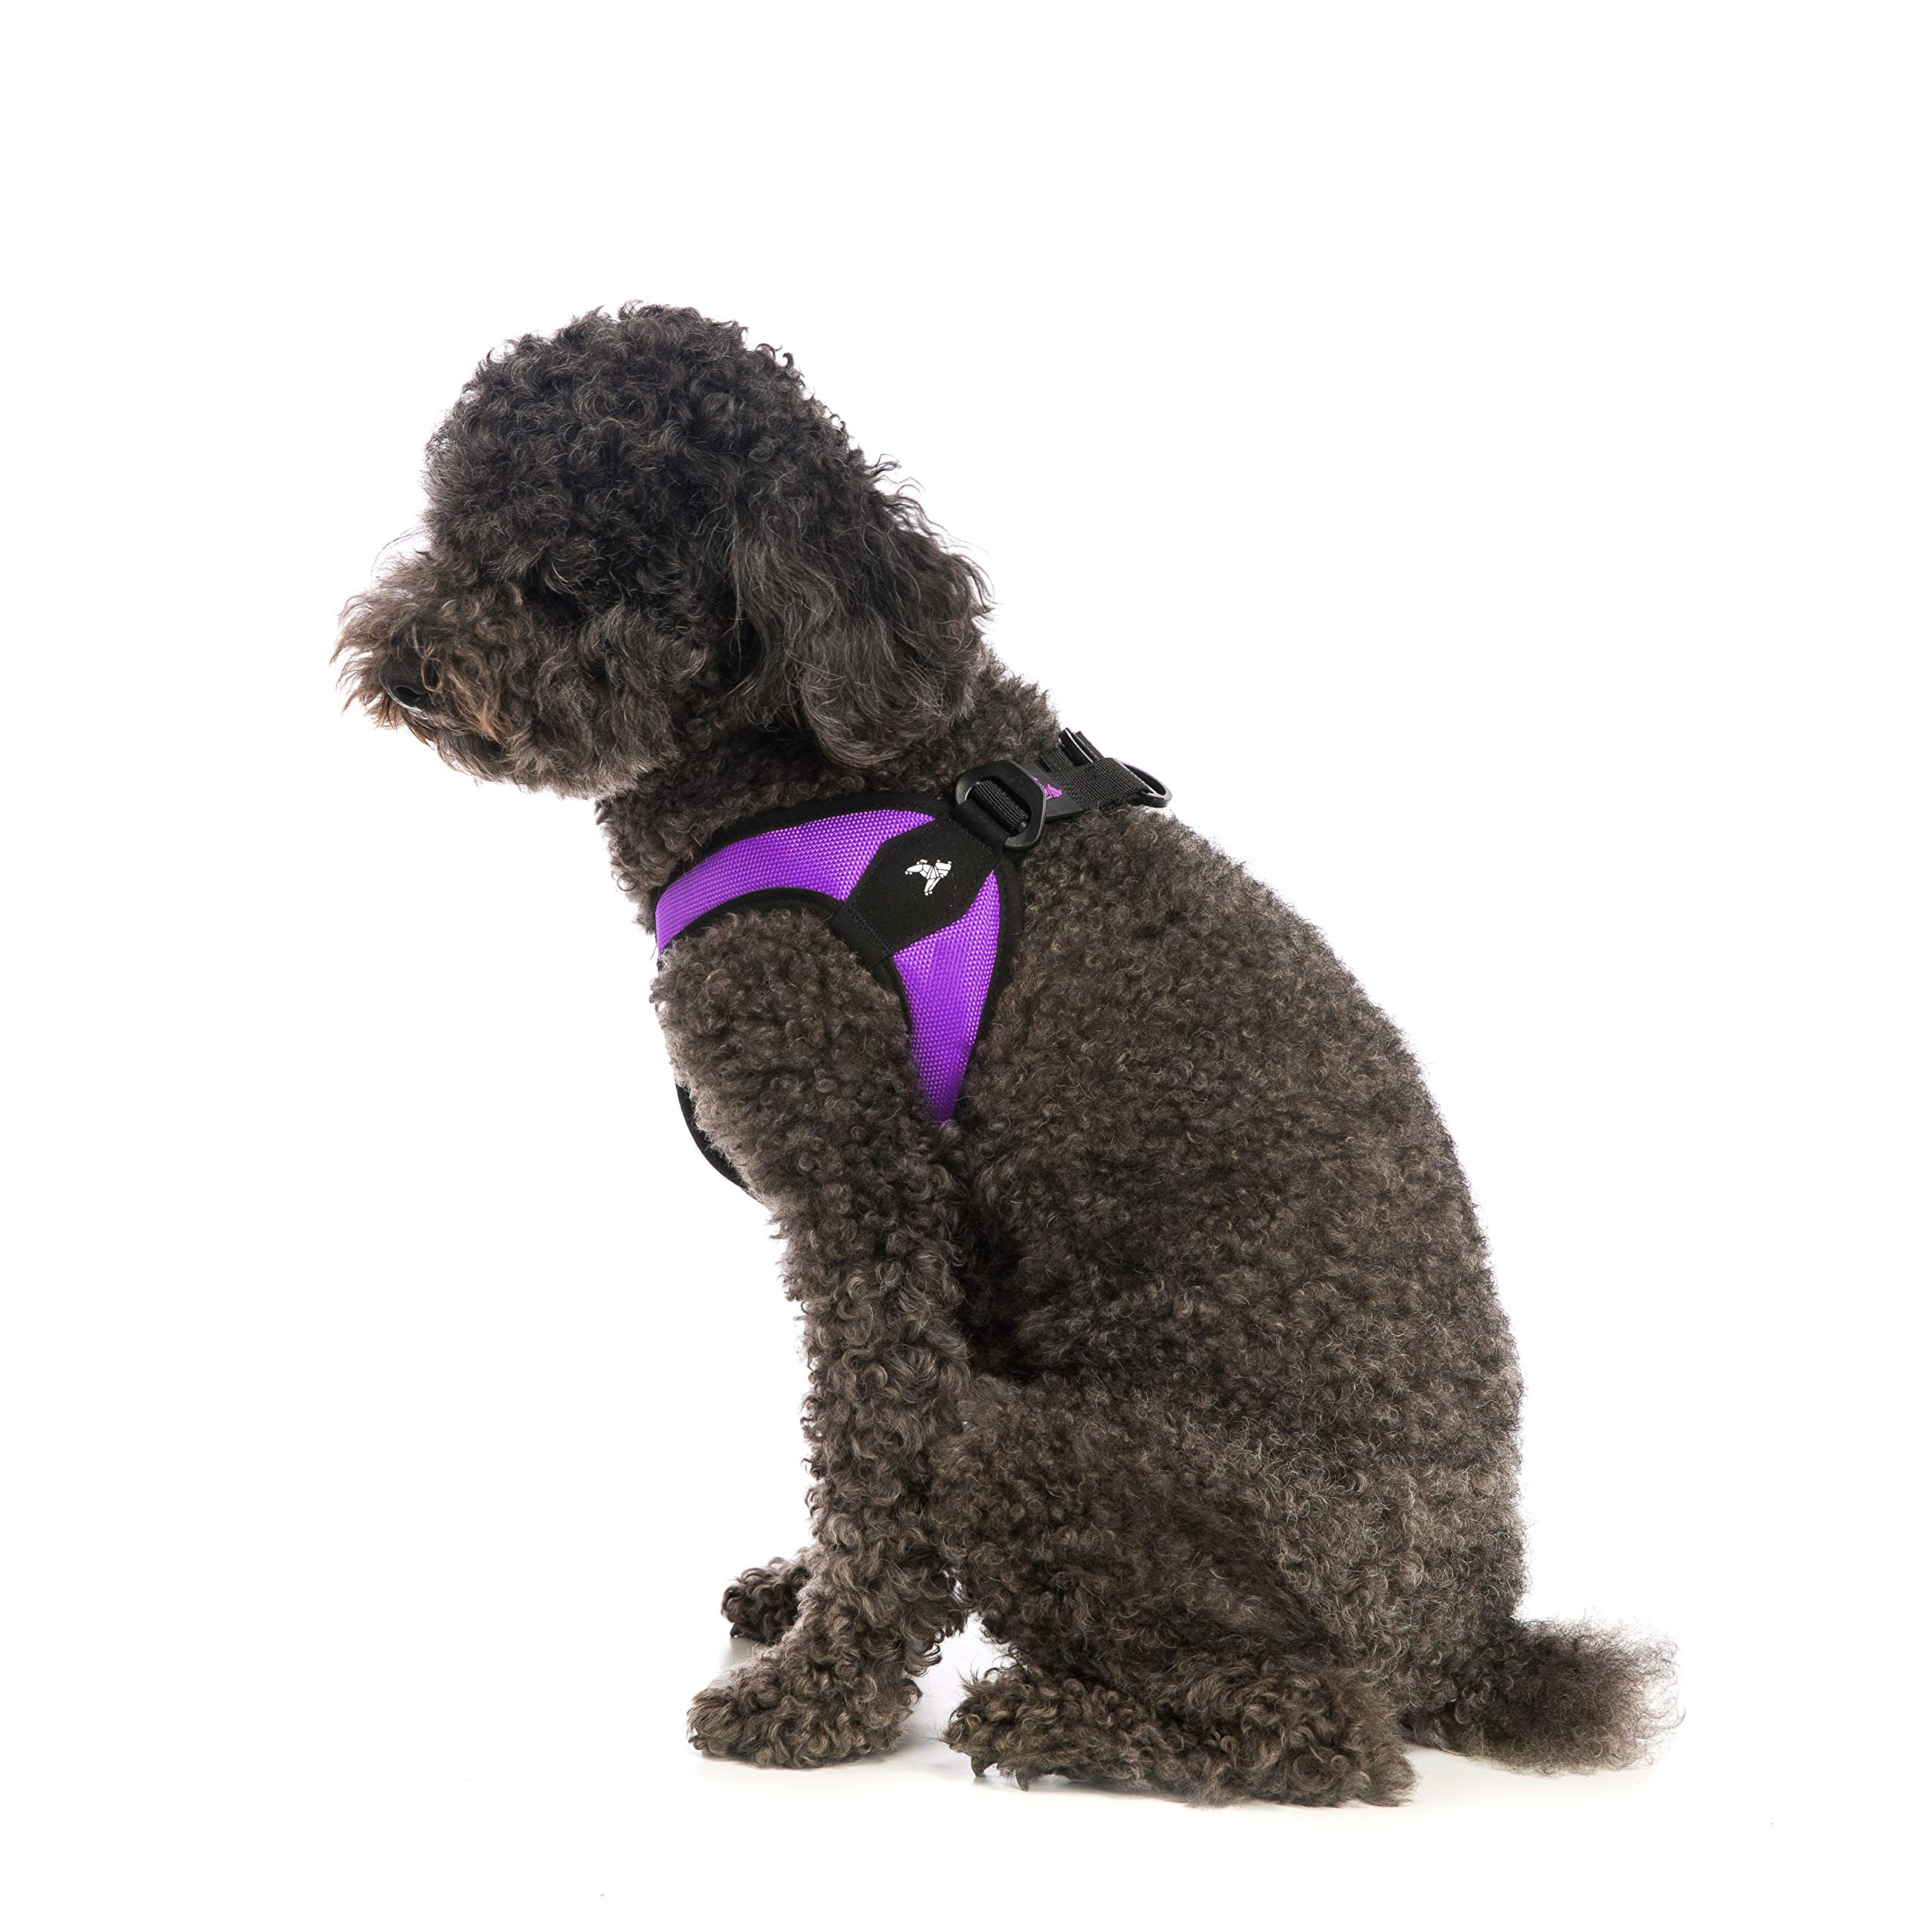 Gooby - Escape Free Easy Fit Harness, Small Dog Step-in Harness for Dogs That Like to Escape Their Harness, Purple, Medium